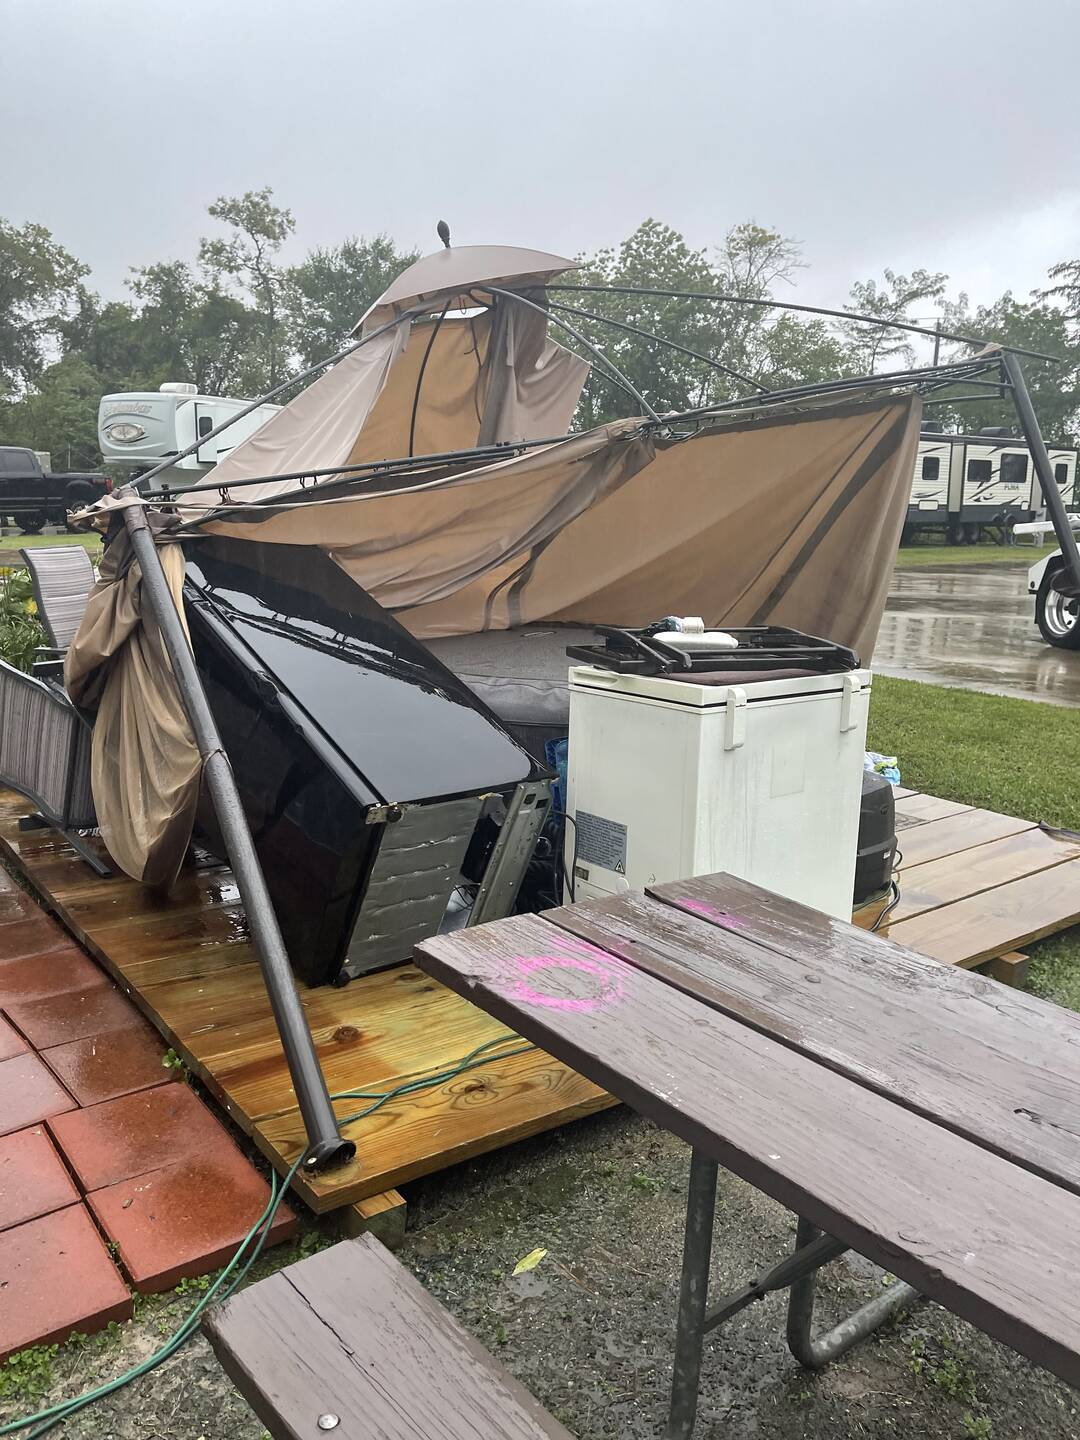 Wind damage in highlands tax from hurricane nicholas